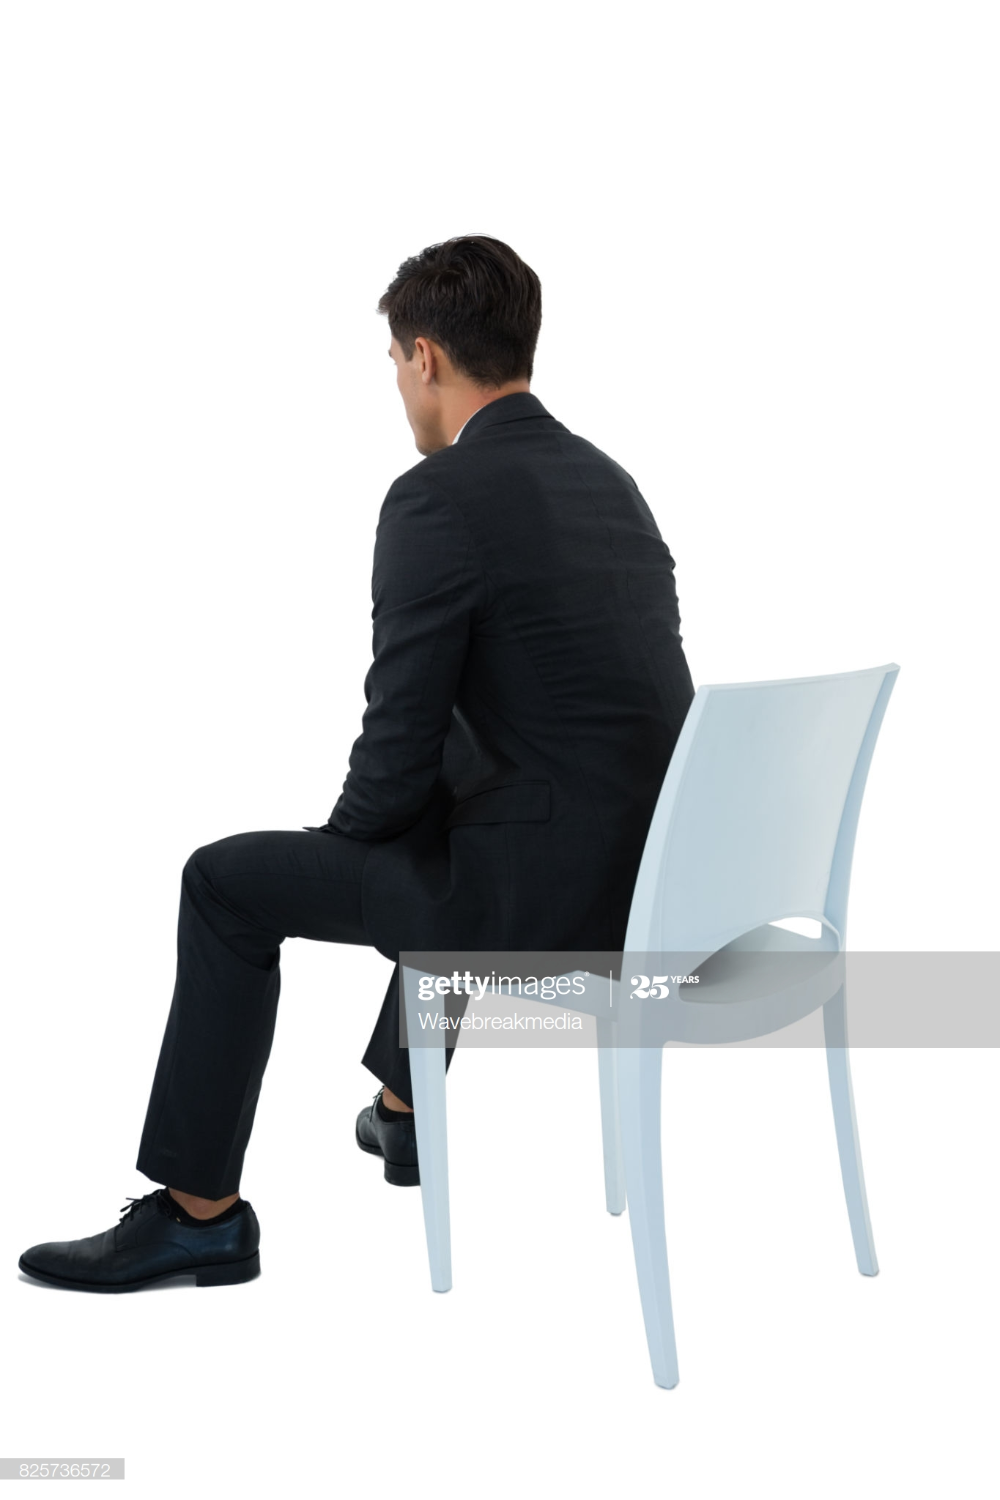 Rear View Of Businessman Sitting On Chair Against White Background Business Man Rear View Views